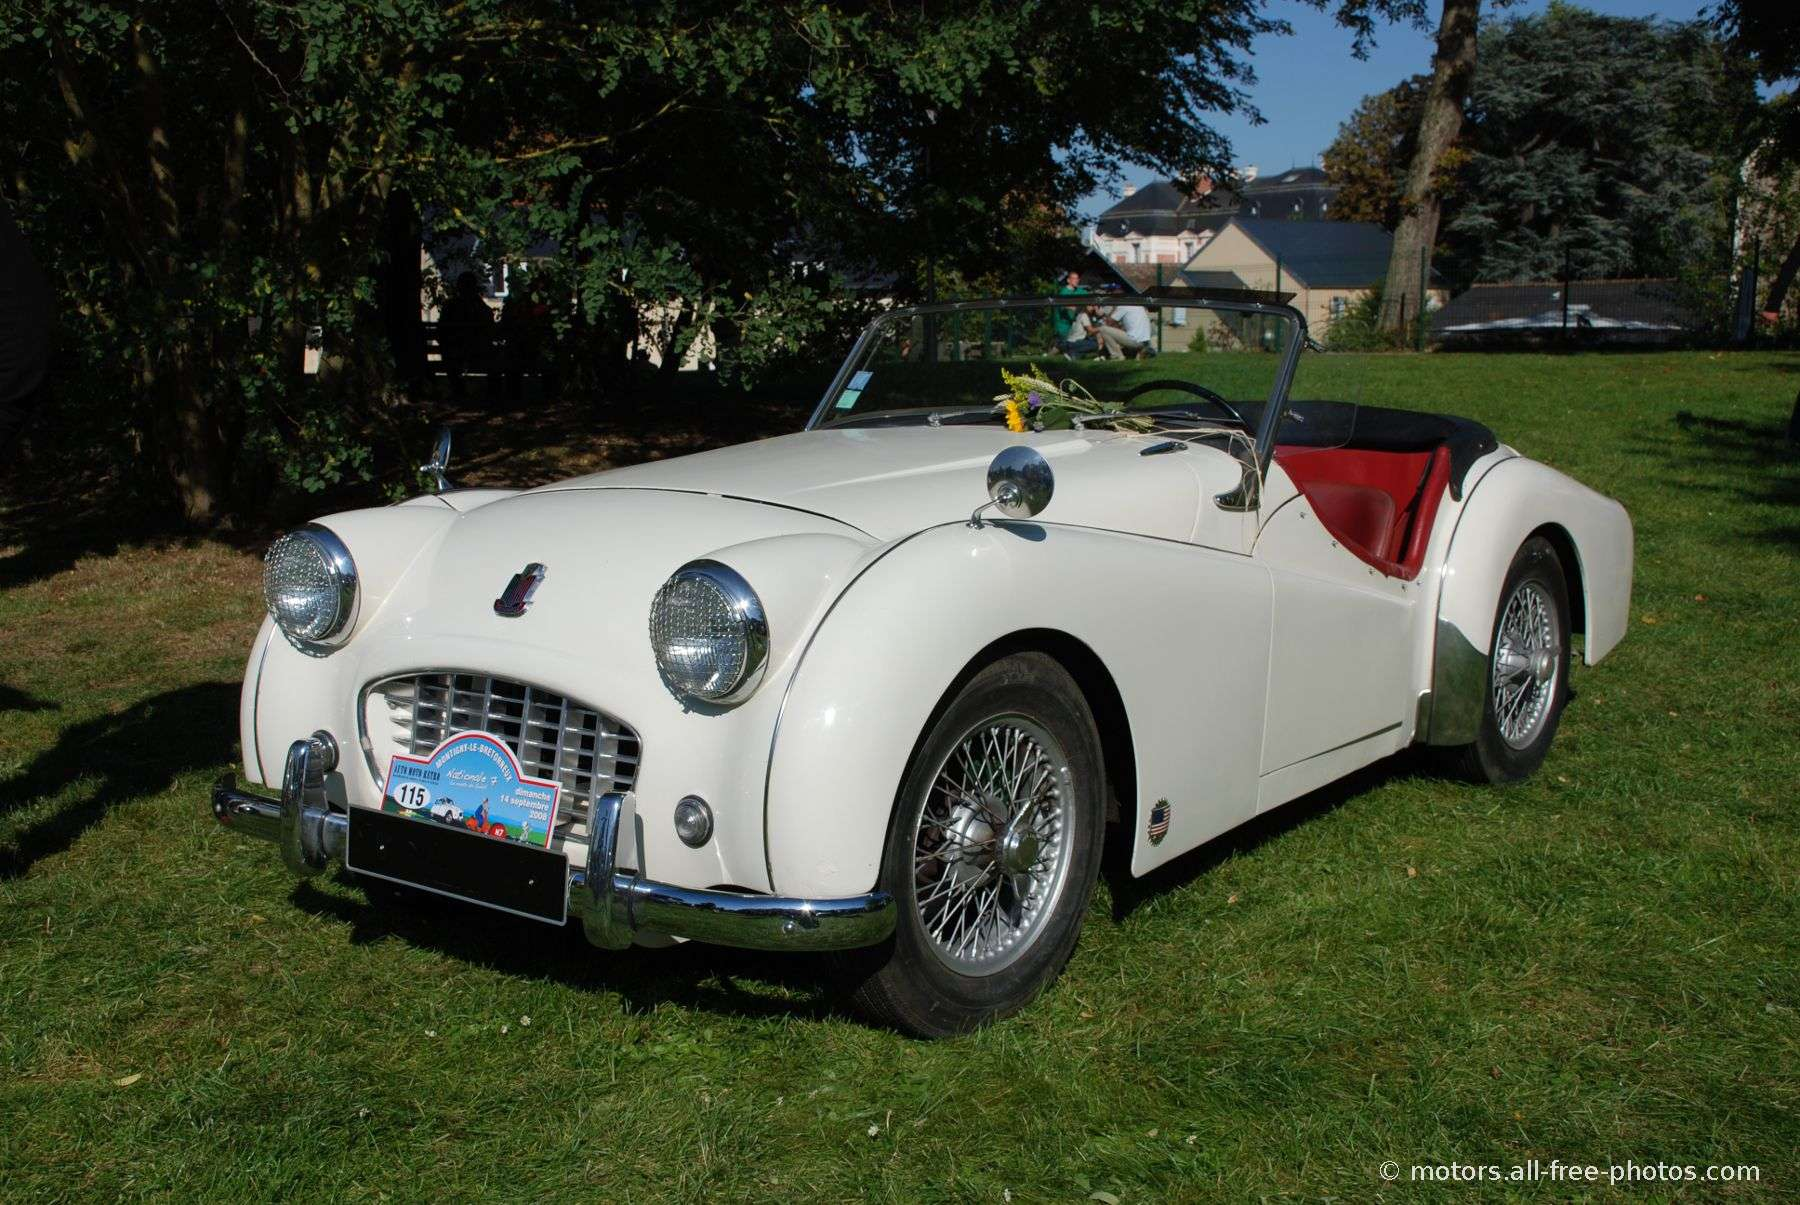 Home Galleries Classic cars English cars Triumph TR2: motors.all-free-photos.com/show/showphoto.php?idph=PI17967&lang=en